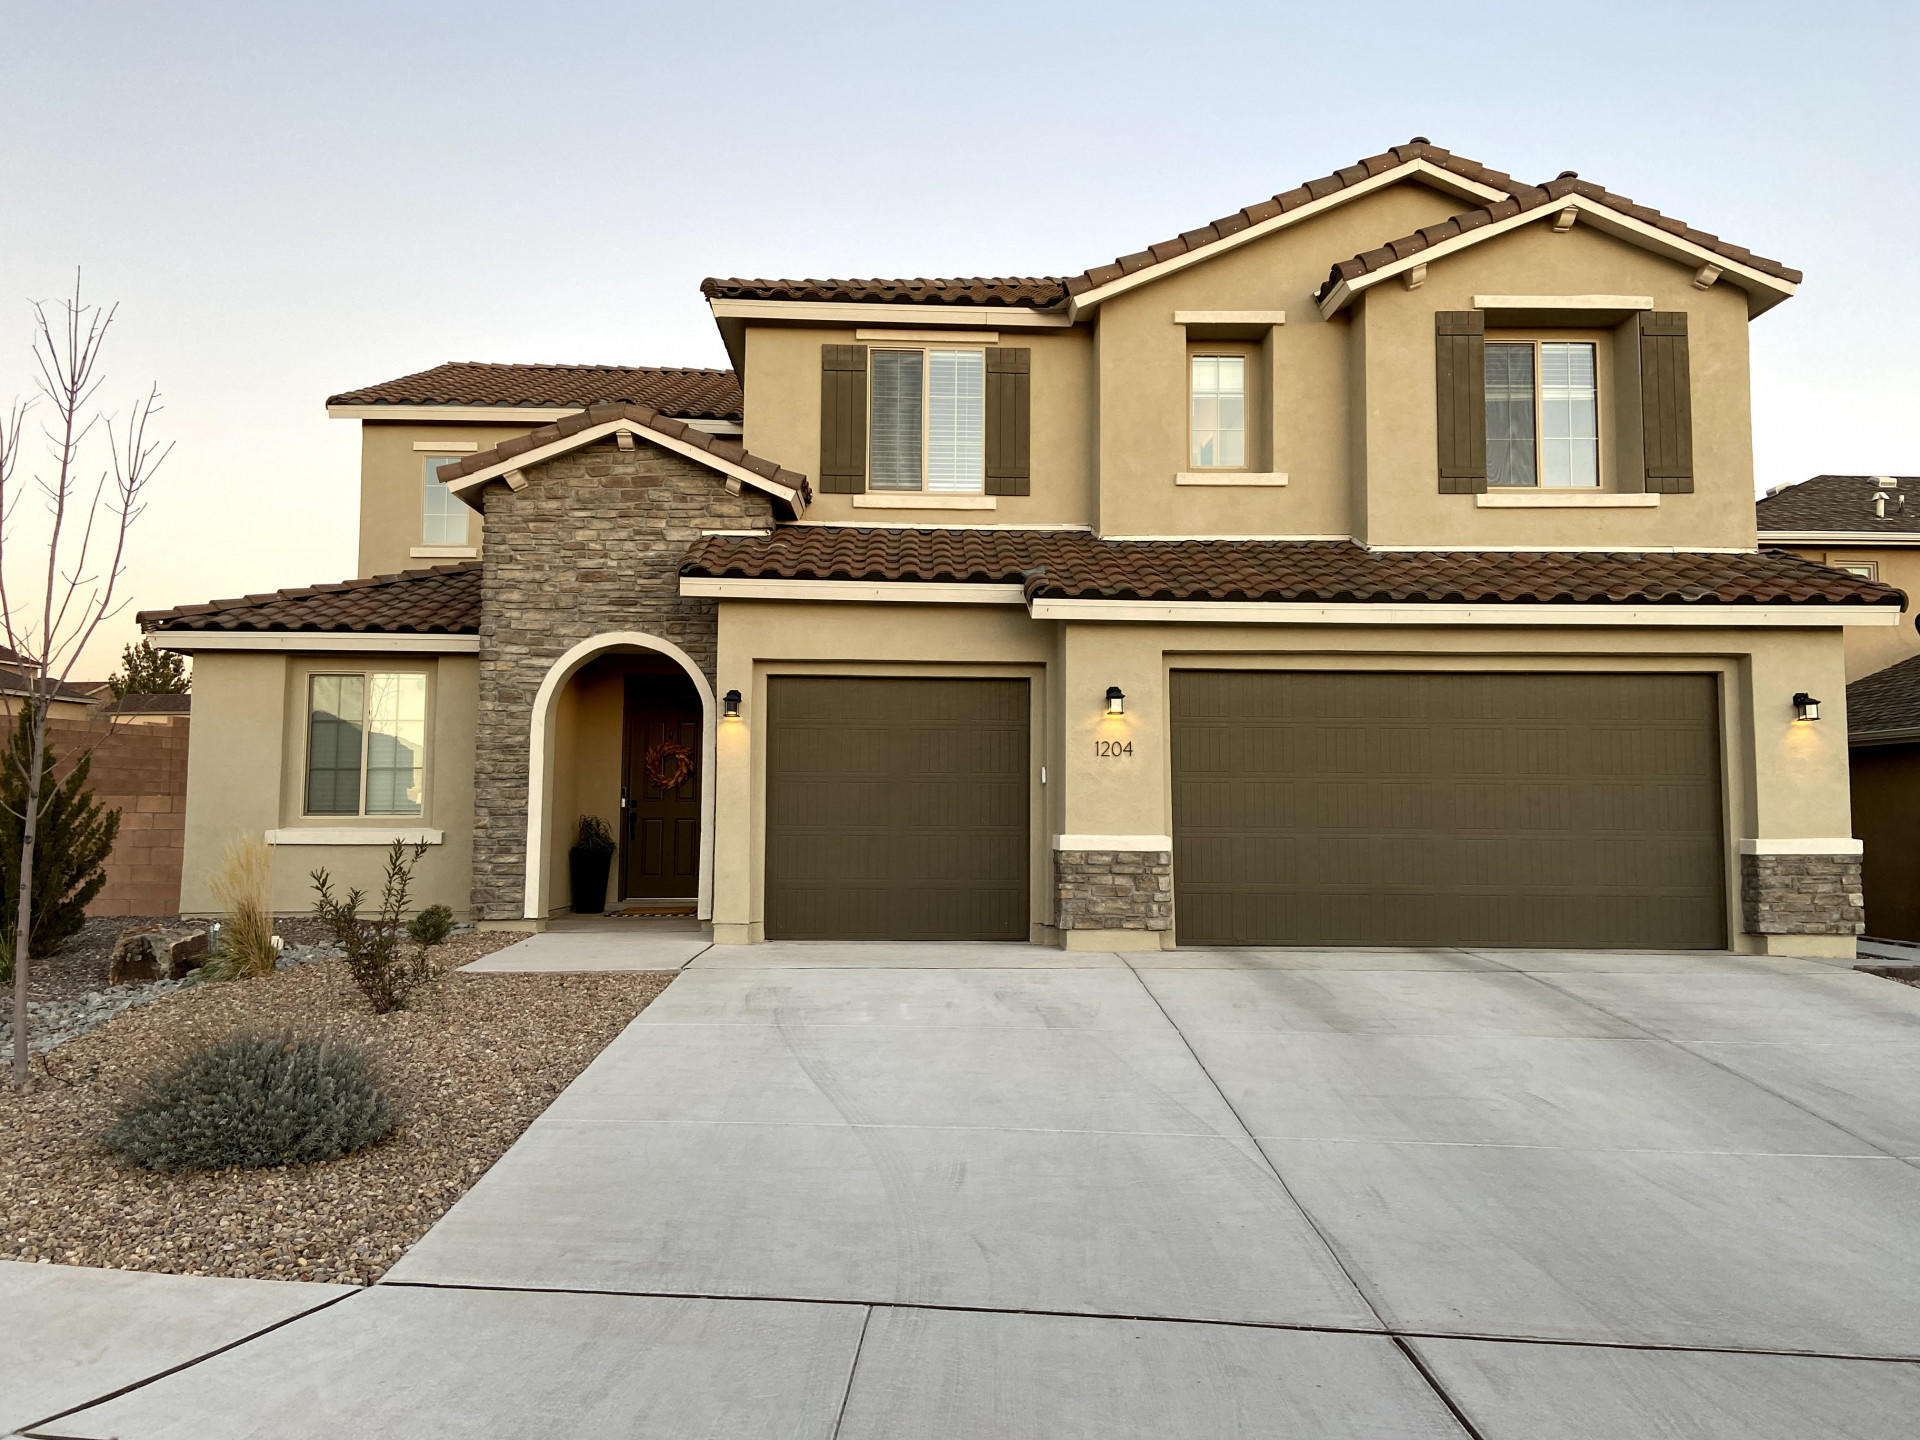 Finally enjoy social distancing in this luxurious, 2018 home on a large corner lot. Located in a pristine neighborhood, this home features many upgrades and luxury touches including three car garage, granite countertops, tankless water heater with recirculation pump, full professional landscaping, epoxy garage floor, built-in surround sound systems, smart home features. 6 bedrooms, with master on first level and guest suite with private bathroom. Backyard features drip irrigation, basketball court, and 2020 Hot Springs Limelight Spa.